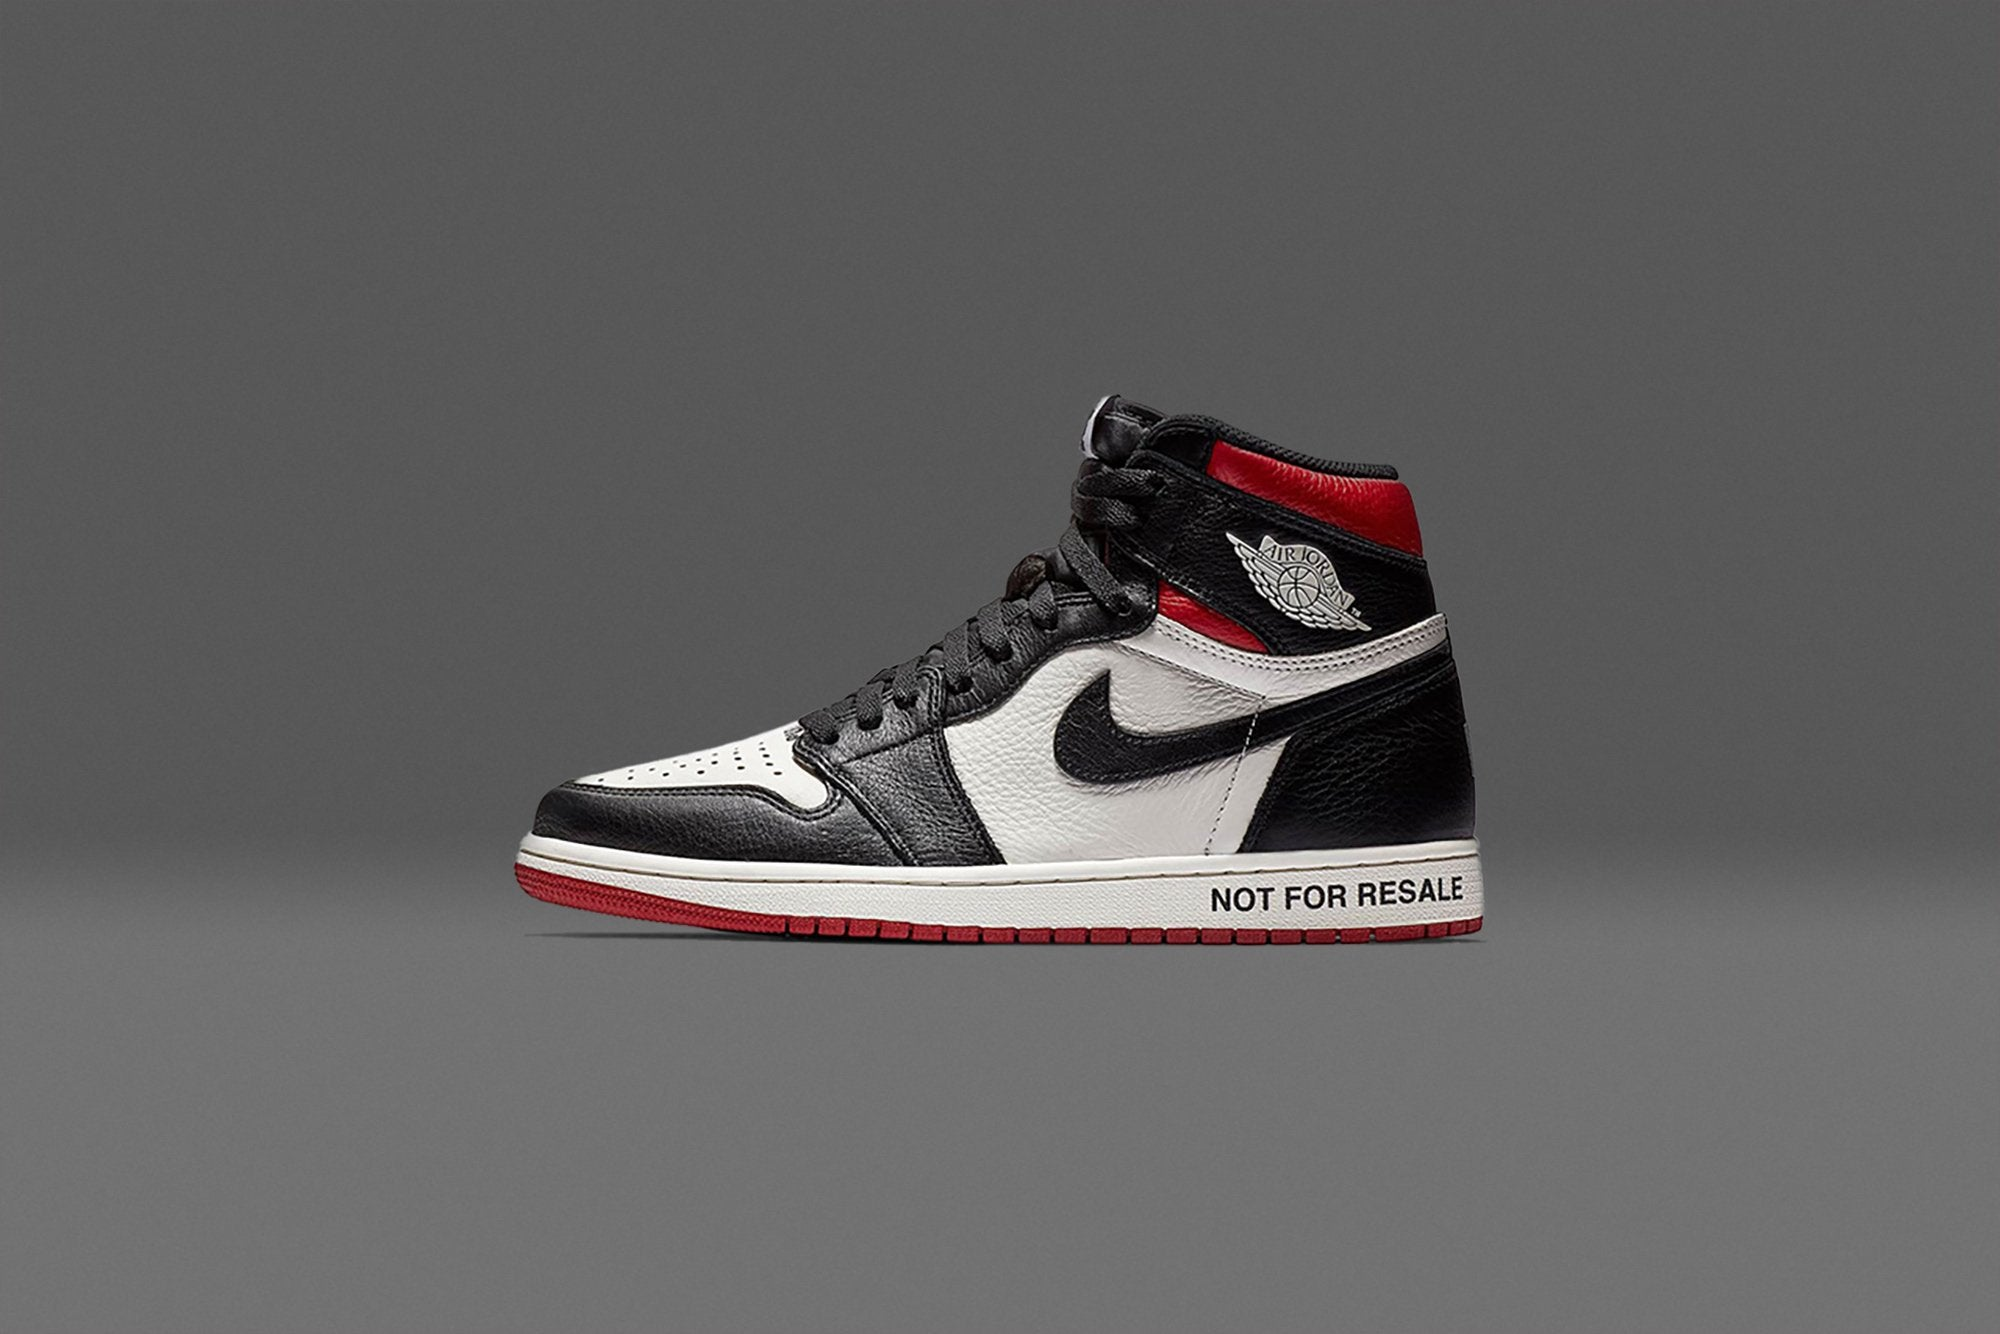 "buy popular f5389 df6e1 This might just be the most self-aware Air Jordan in the game. The Air  Jordan 1 Retro High OG ""Not For Resale"" has no love for the bots or clout  hoppers ..."